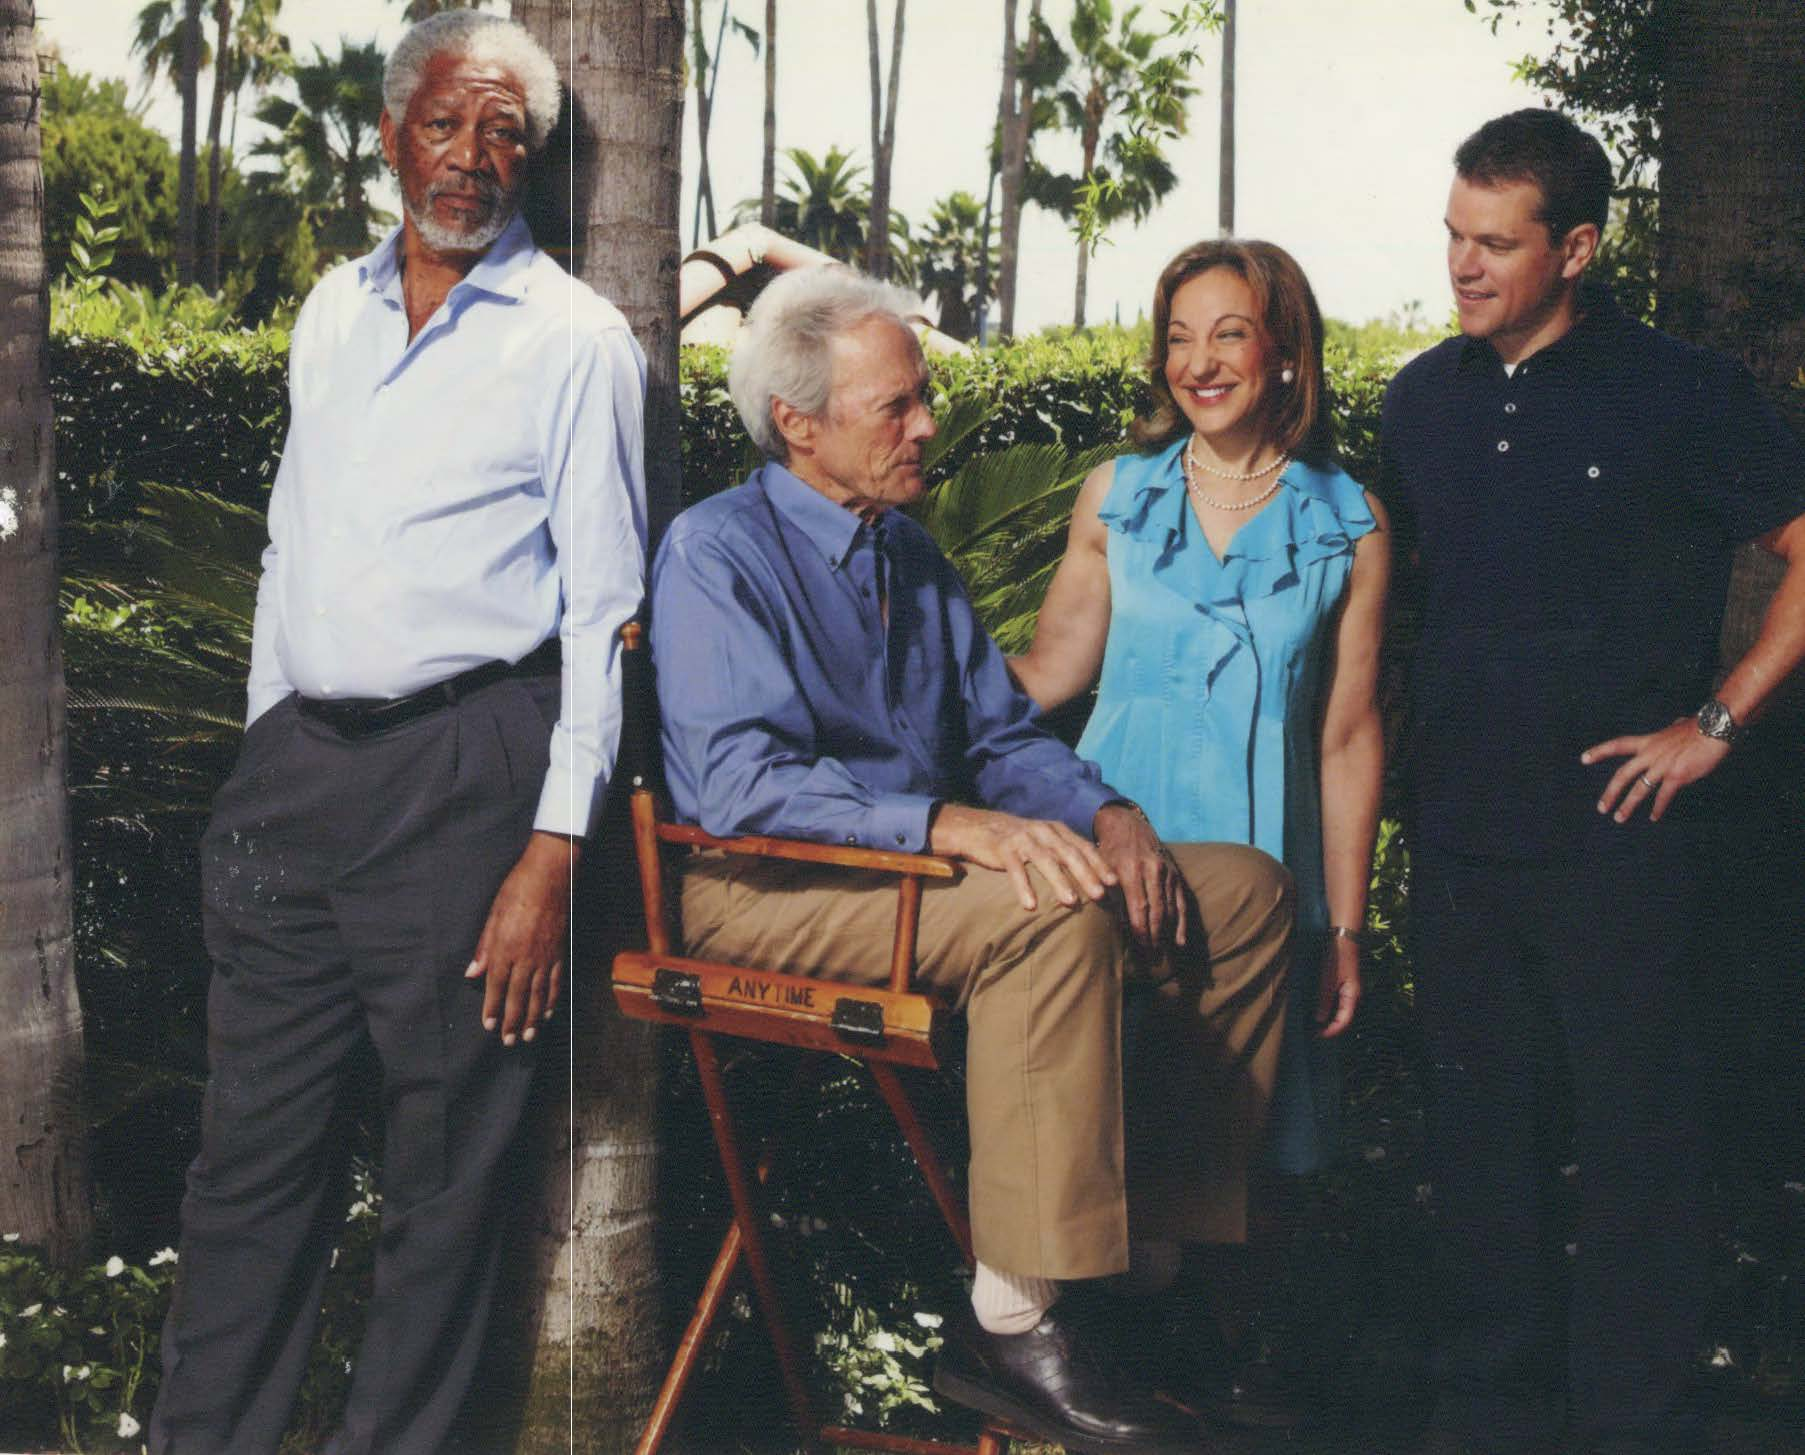 An afternoon interviewing Morgan Freeman, Clint Eastwood, and Matt Damon